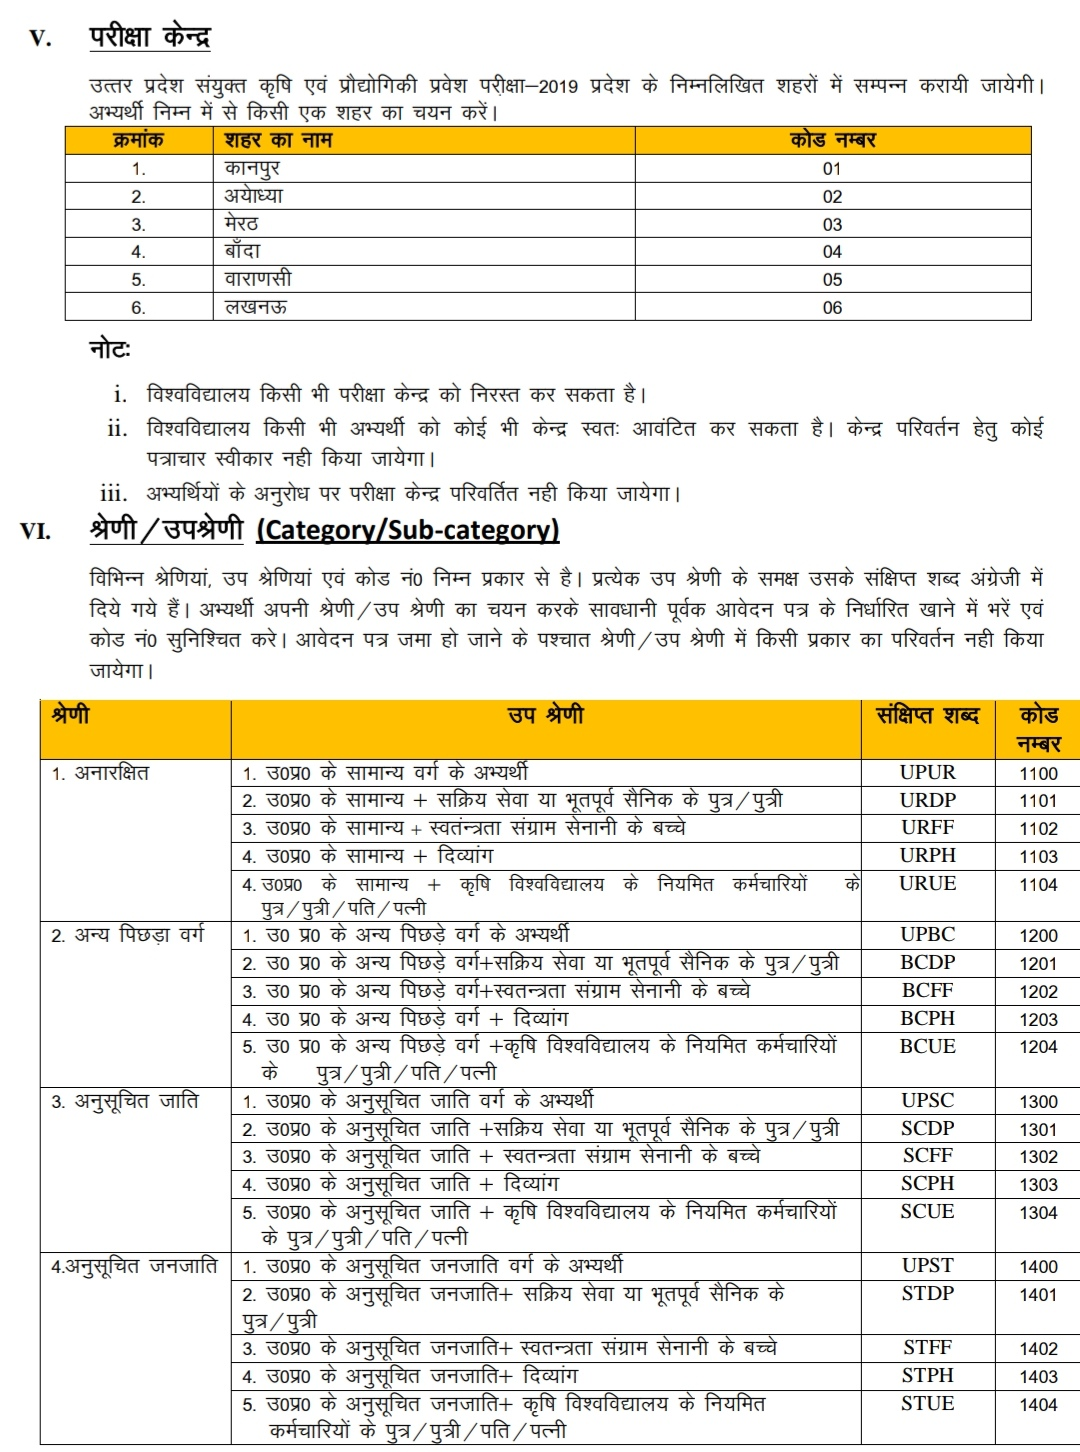 UPCATET exam schedule 2019,exam date 2019,Upcatet counseling date 2019, upcatet total seats , upcatet modal paper,upcatet syllabus, upcatet online application form, upcatet admit card, upcatet result , upcatet old paper,upcatet entrance exam for admission in up agriculture college